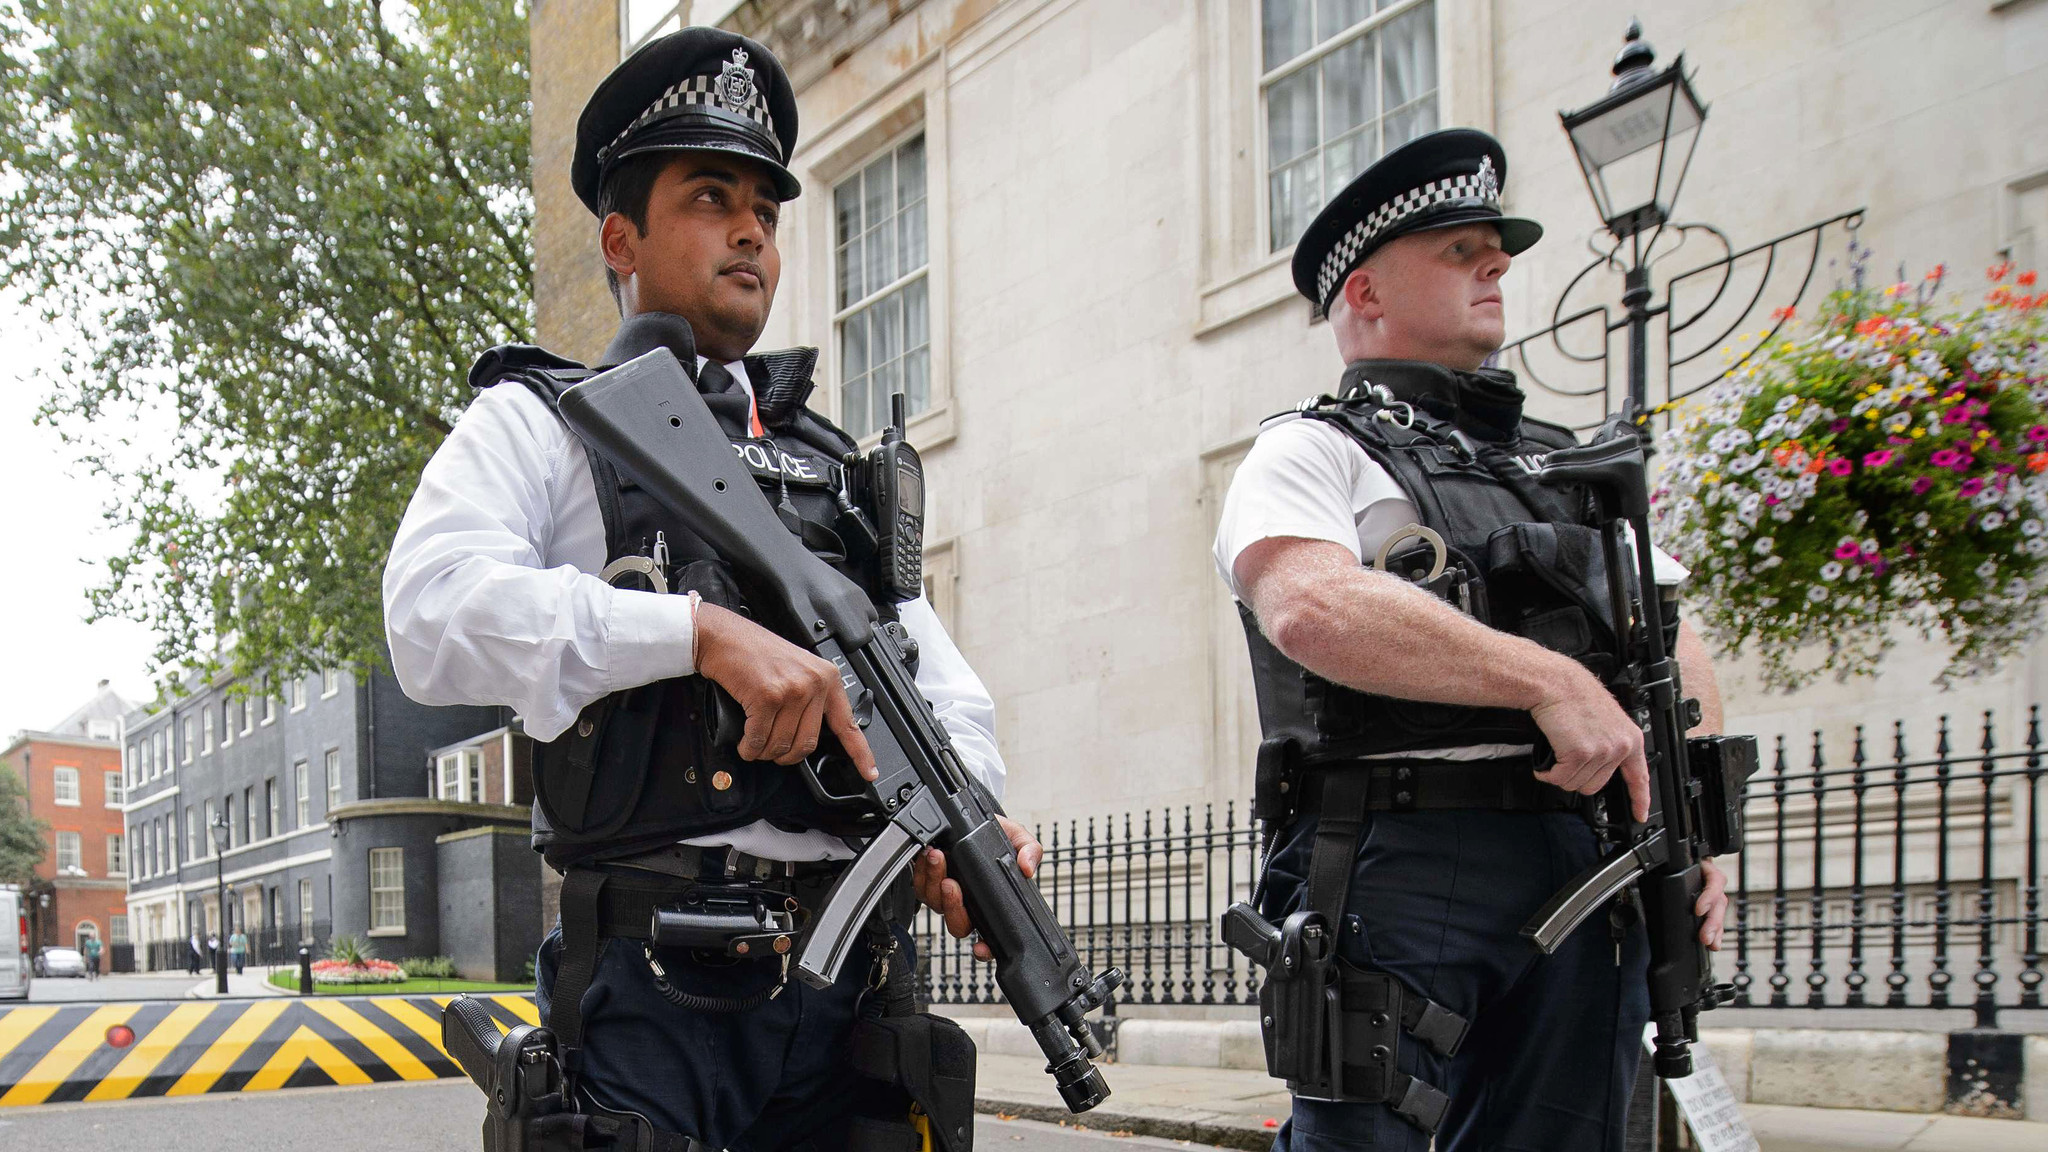 Britain raises security threat from 'substantial' to 'severe'